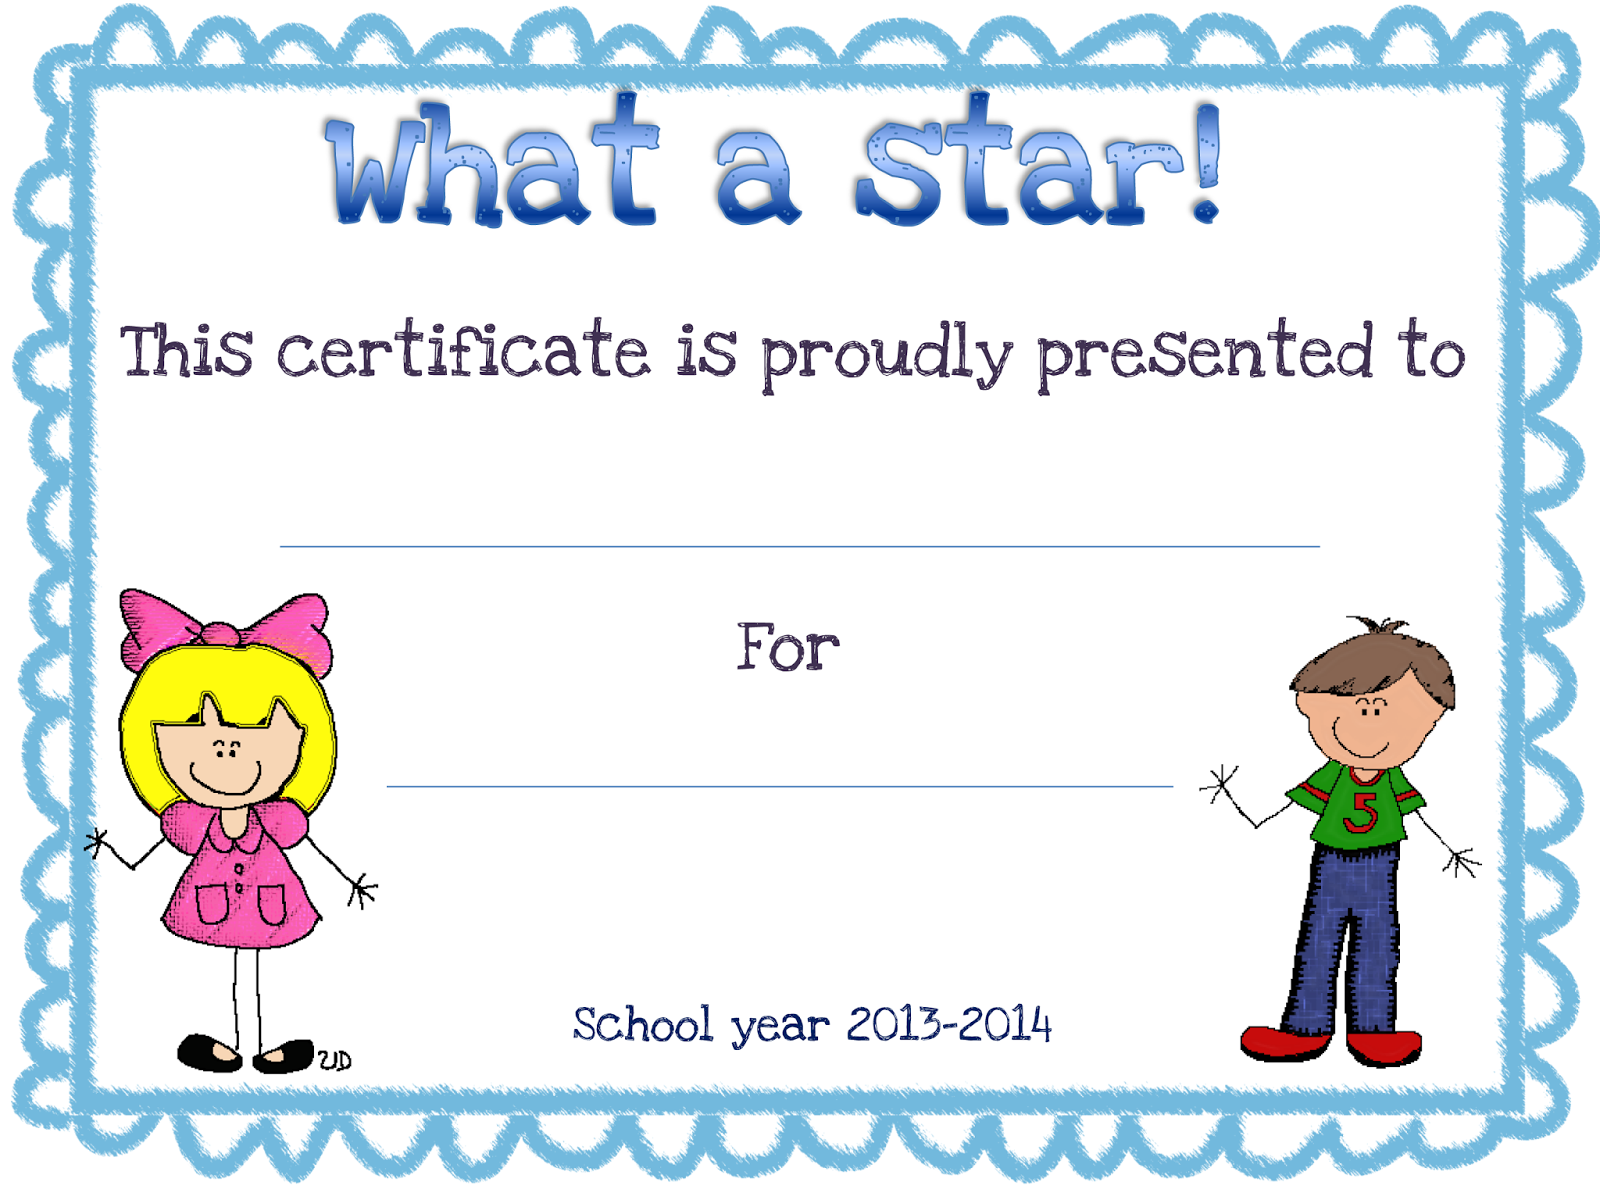 Star certificate templates super star certificate shining stars 1betcityfo Images